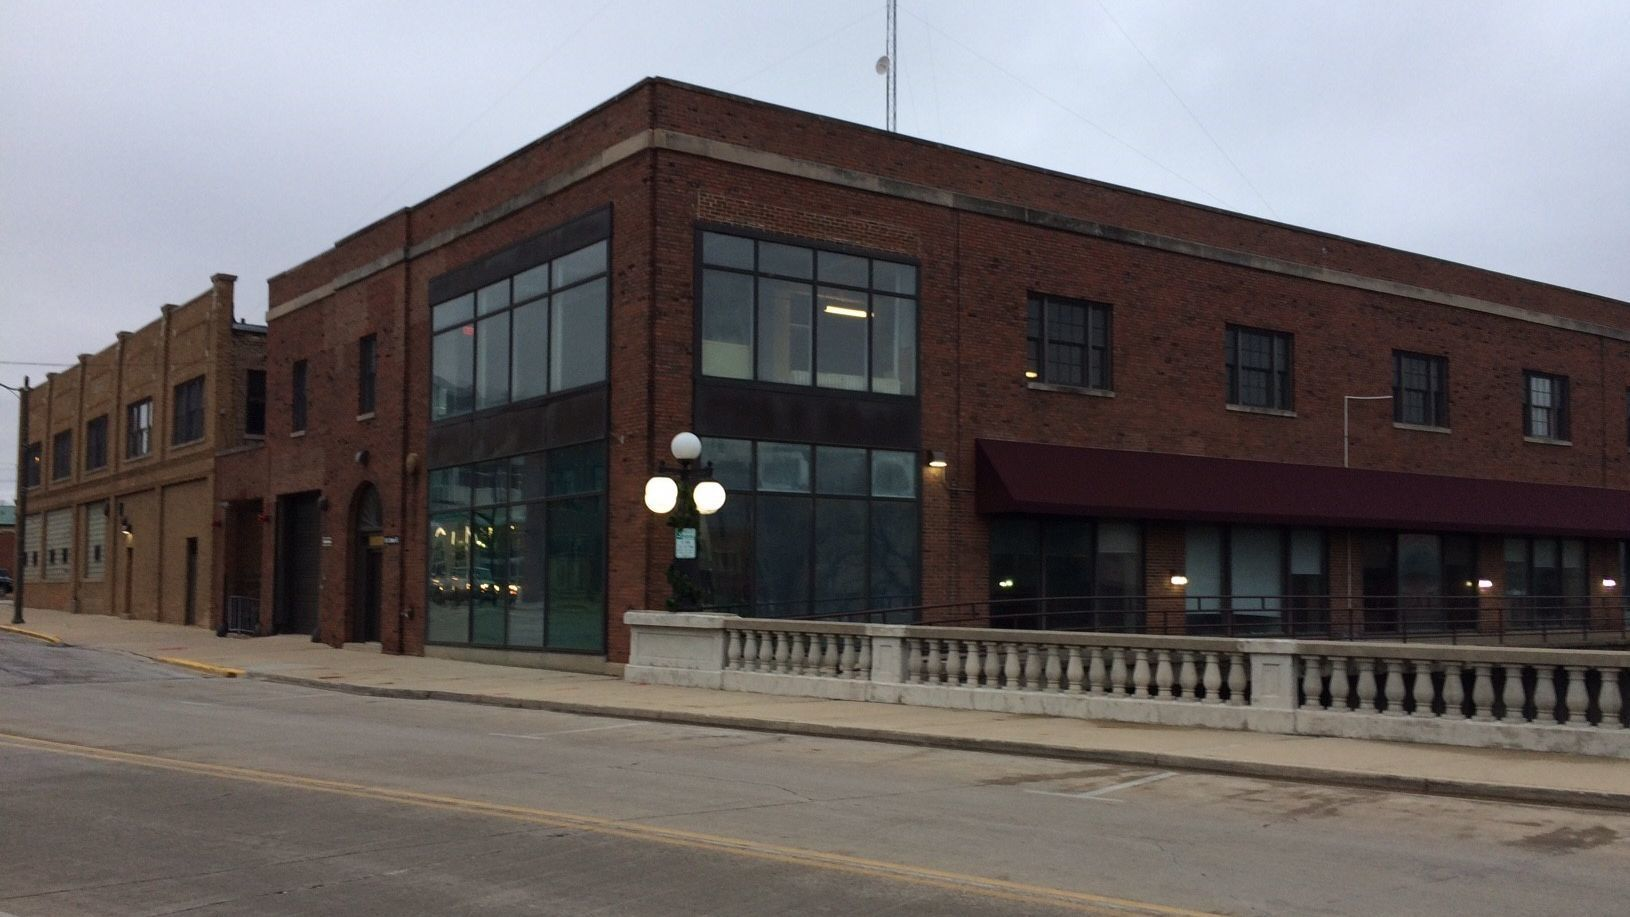 City council set to vote on development of old West Aurora district building, 20-year plan for Route 59